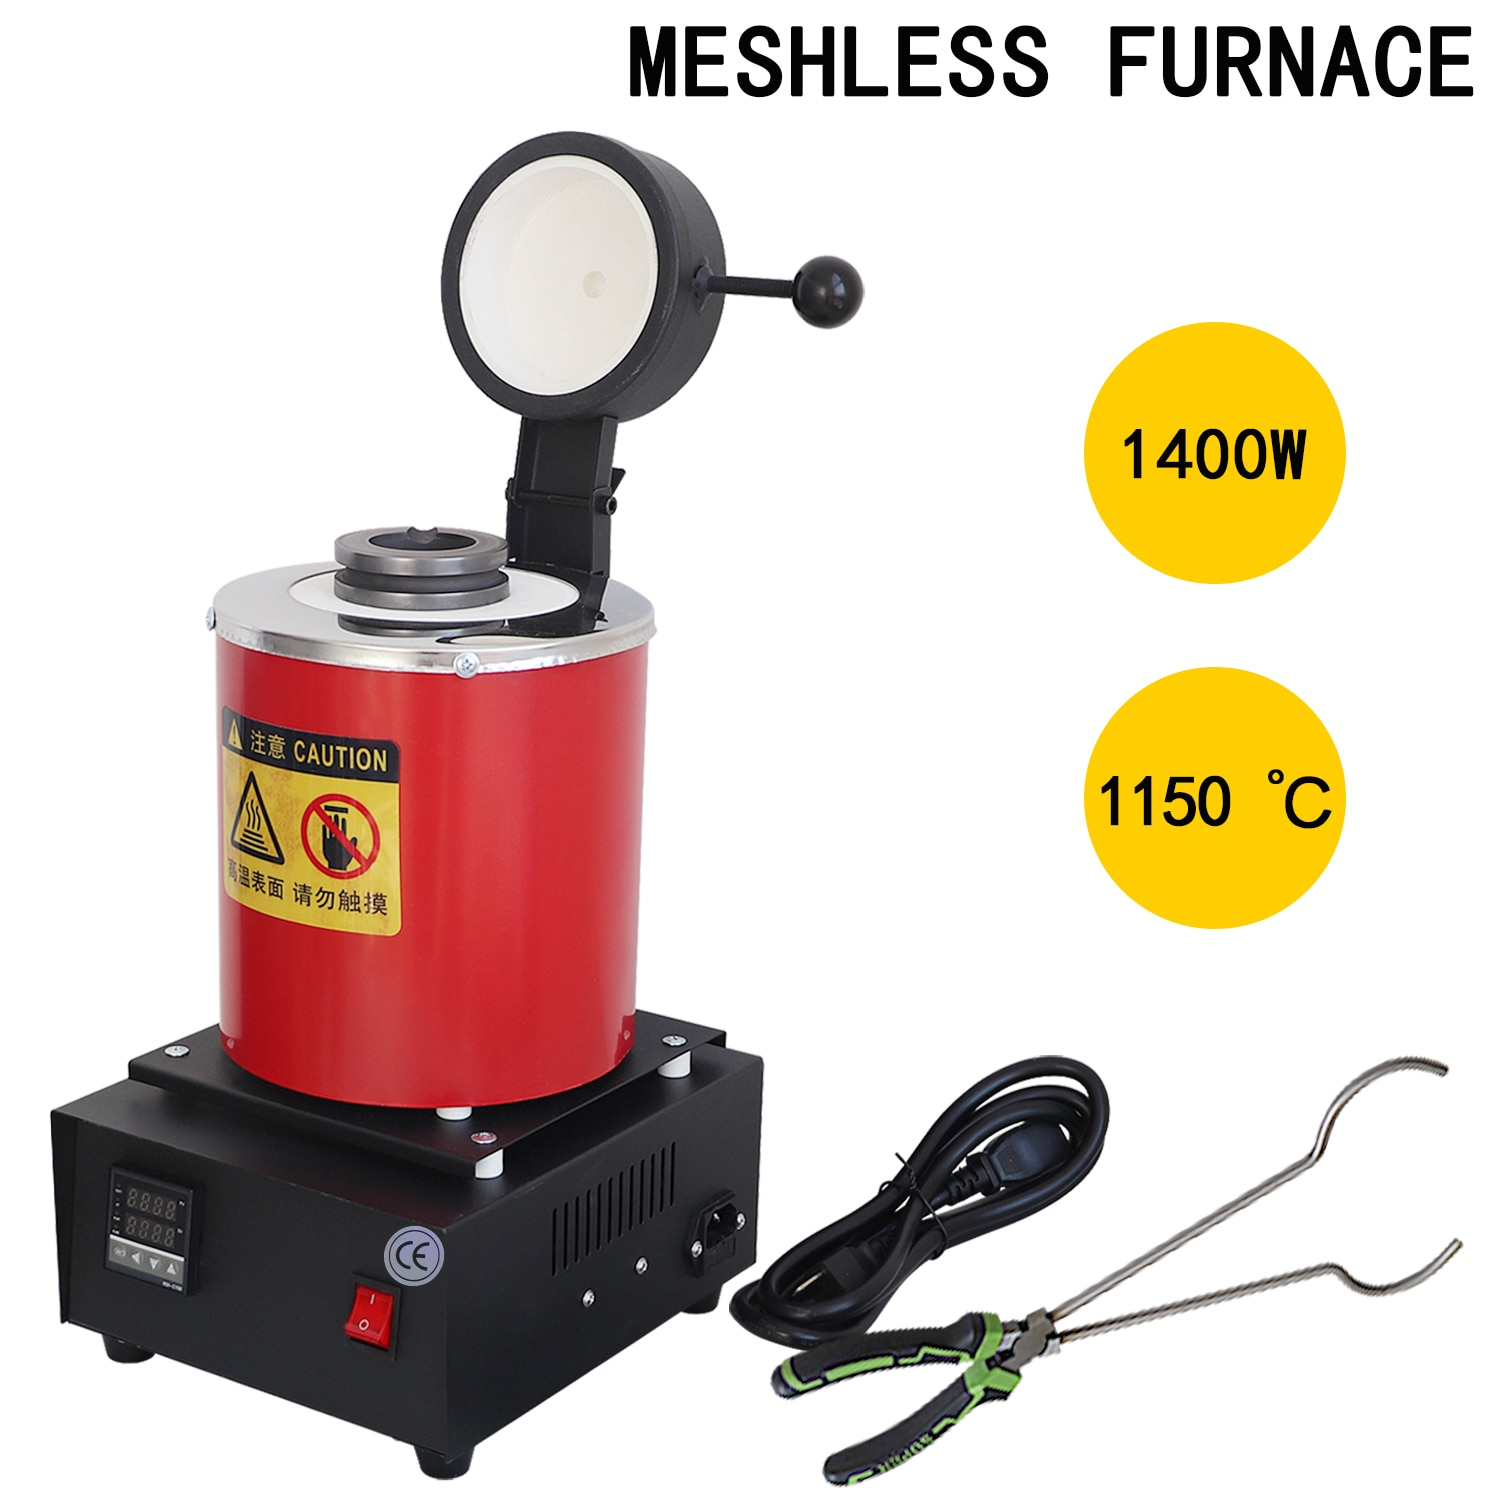 220v 110v 1~3kg Gold Melting Furnace 1400W Portable Graphite Crucible Furnace Jewelry Casting Equipment And Tools